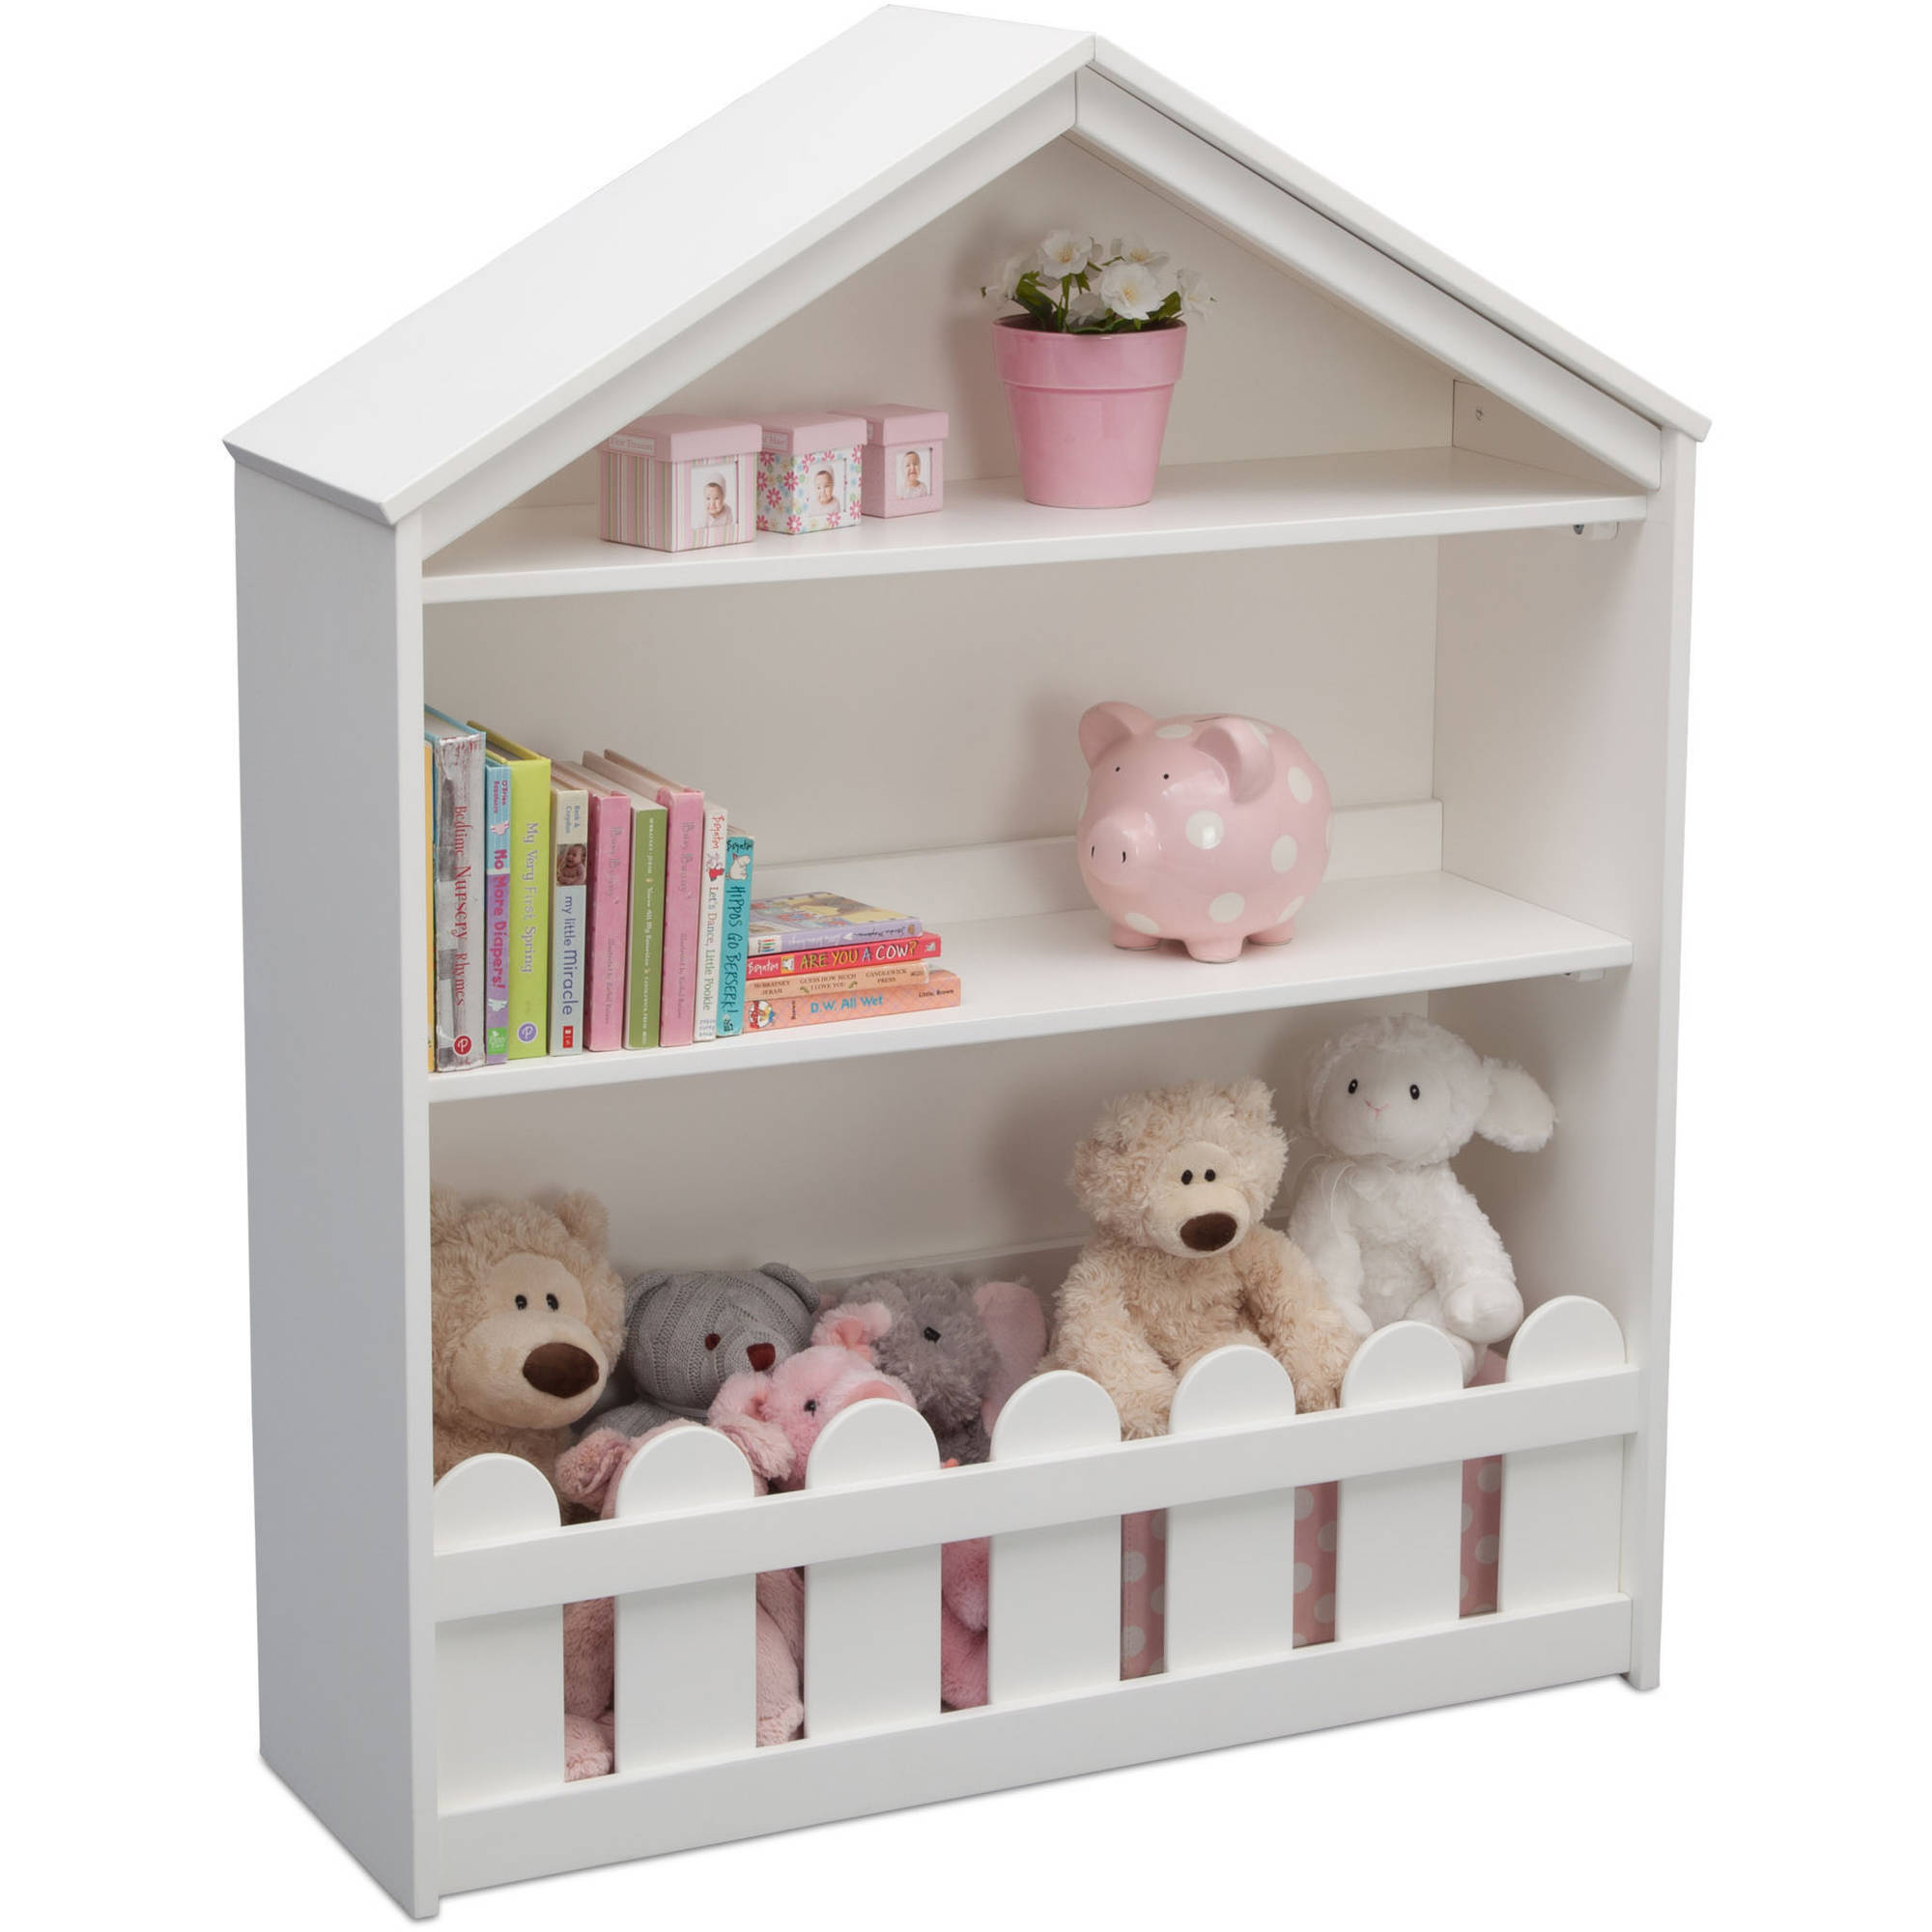 Serta Happy Home Storage Bookcase, Multiple Colors